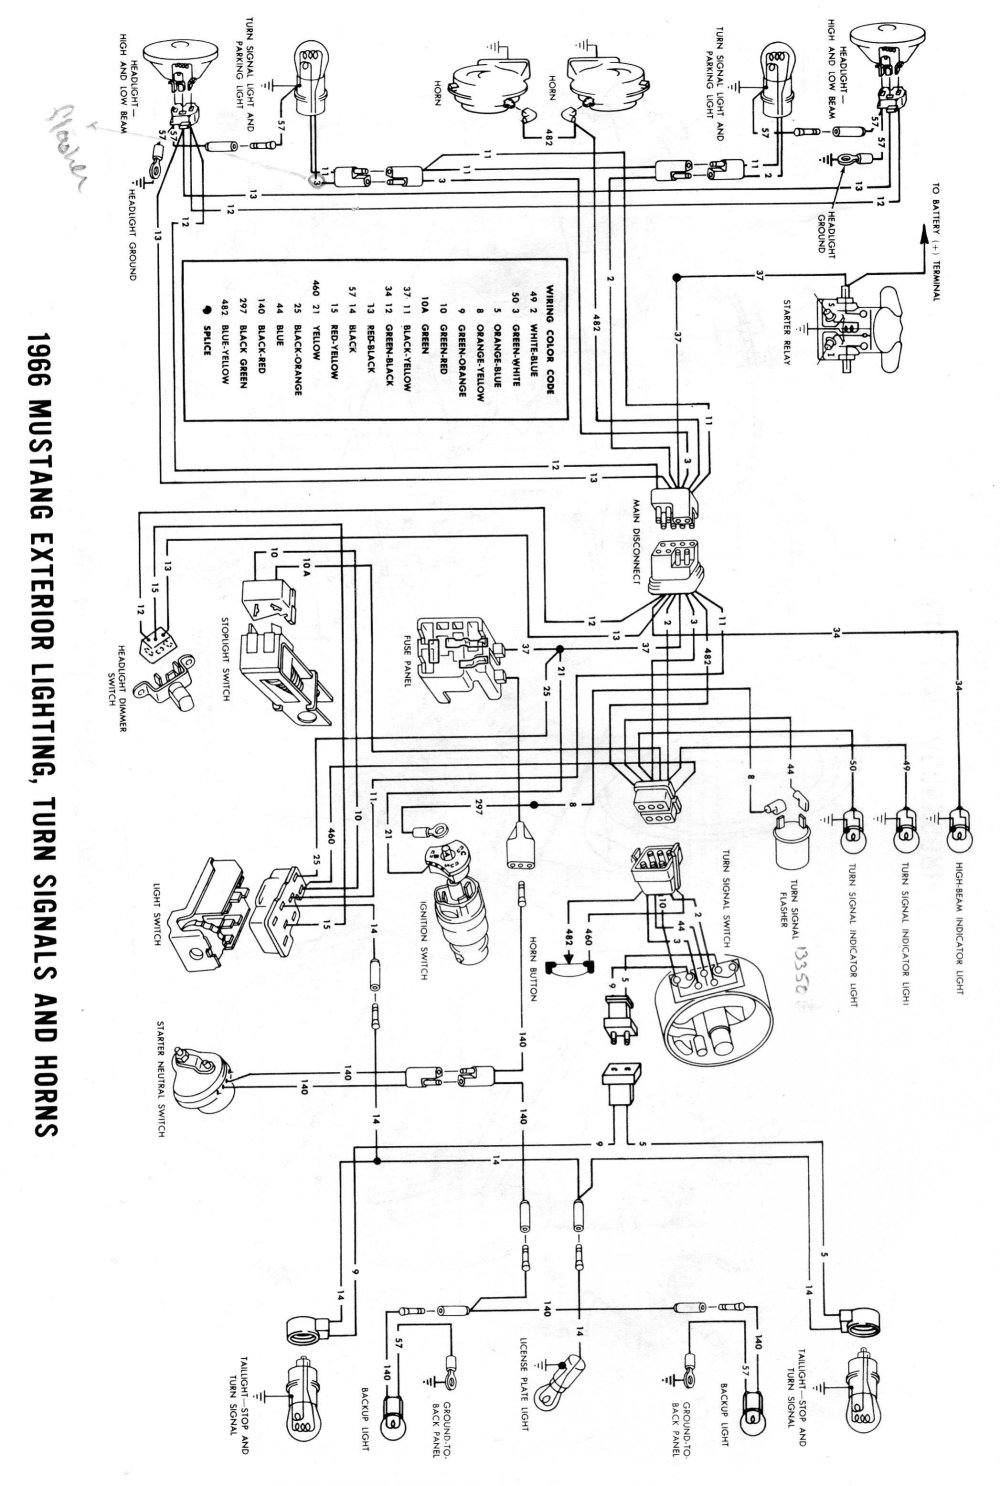 medium resolution of 1966 mustang wiring diagram free wiring diagram expert 1965 mustang wiring schematic free